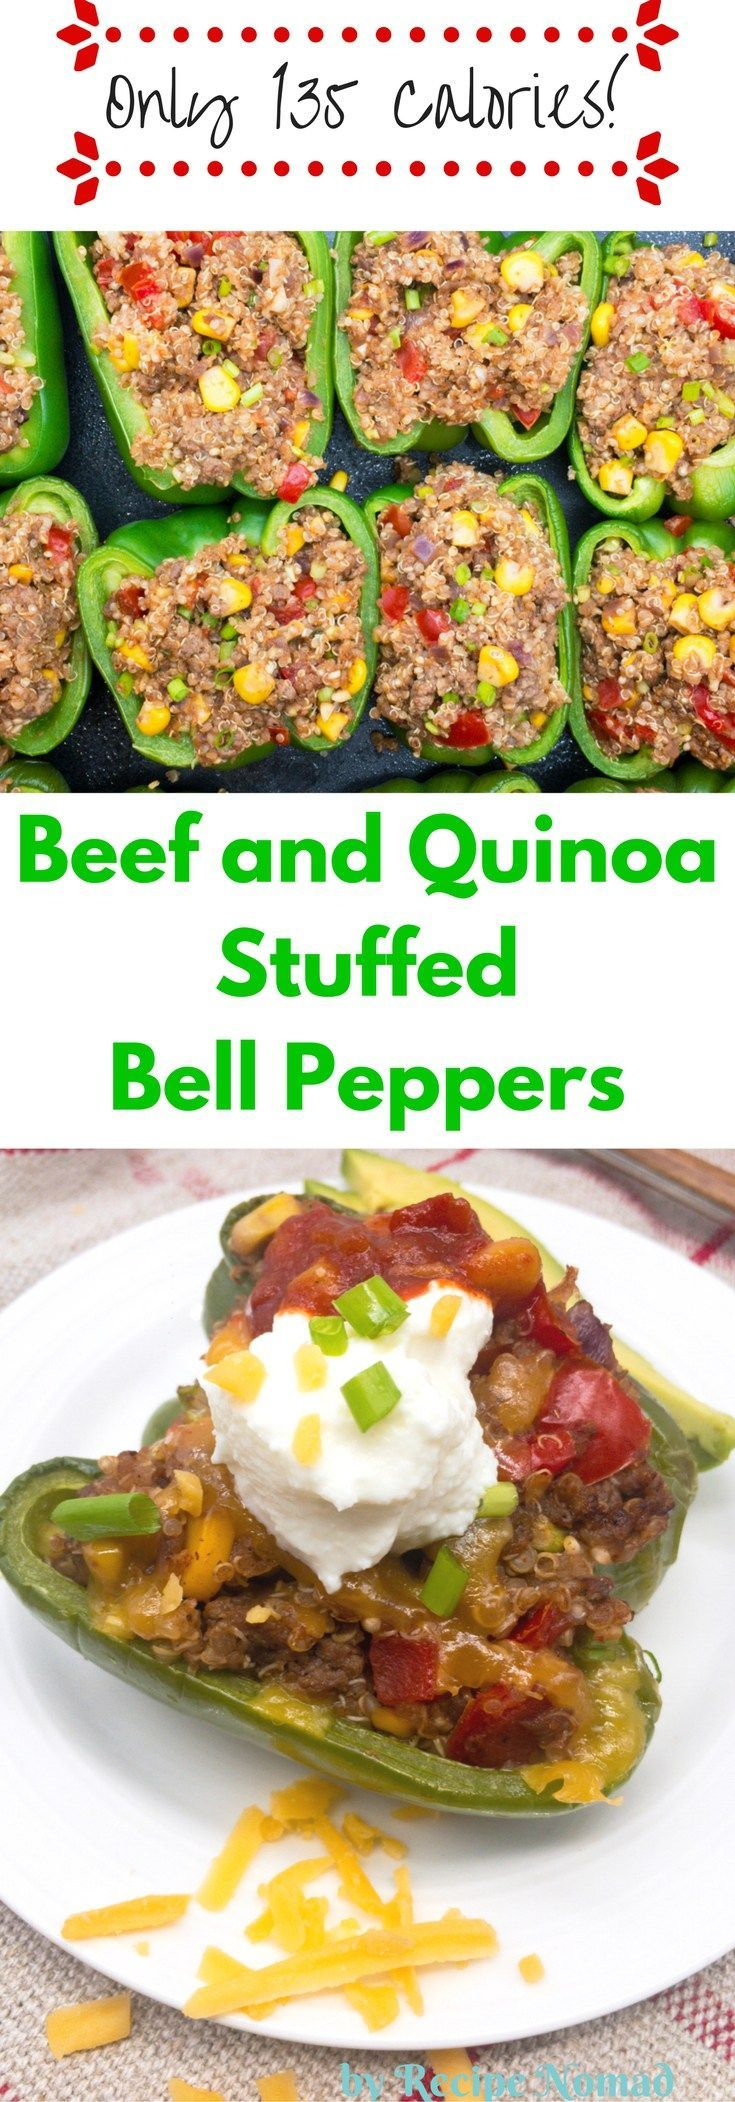 Beef and Quinoa Stuffed Bell Peppers | Recipe Nomad  I'm loving these Low Calorie Beef Quinoa Stuffed Bell Peppers! The quinoa and beef mixture with the Mexican spices and then stuffed in a bell pepper is incredibly delicious!